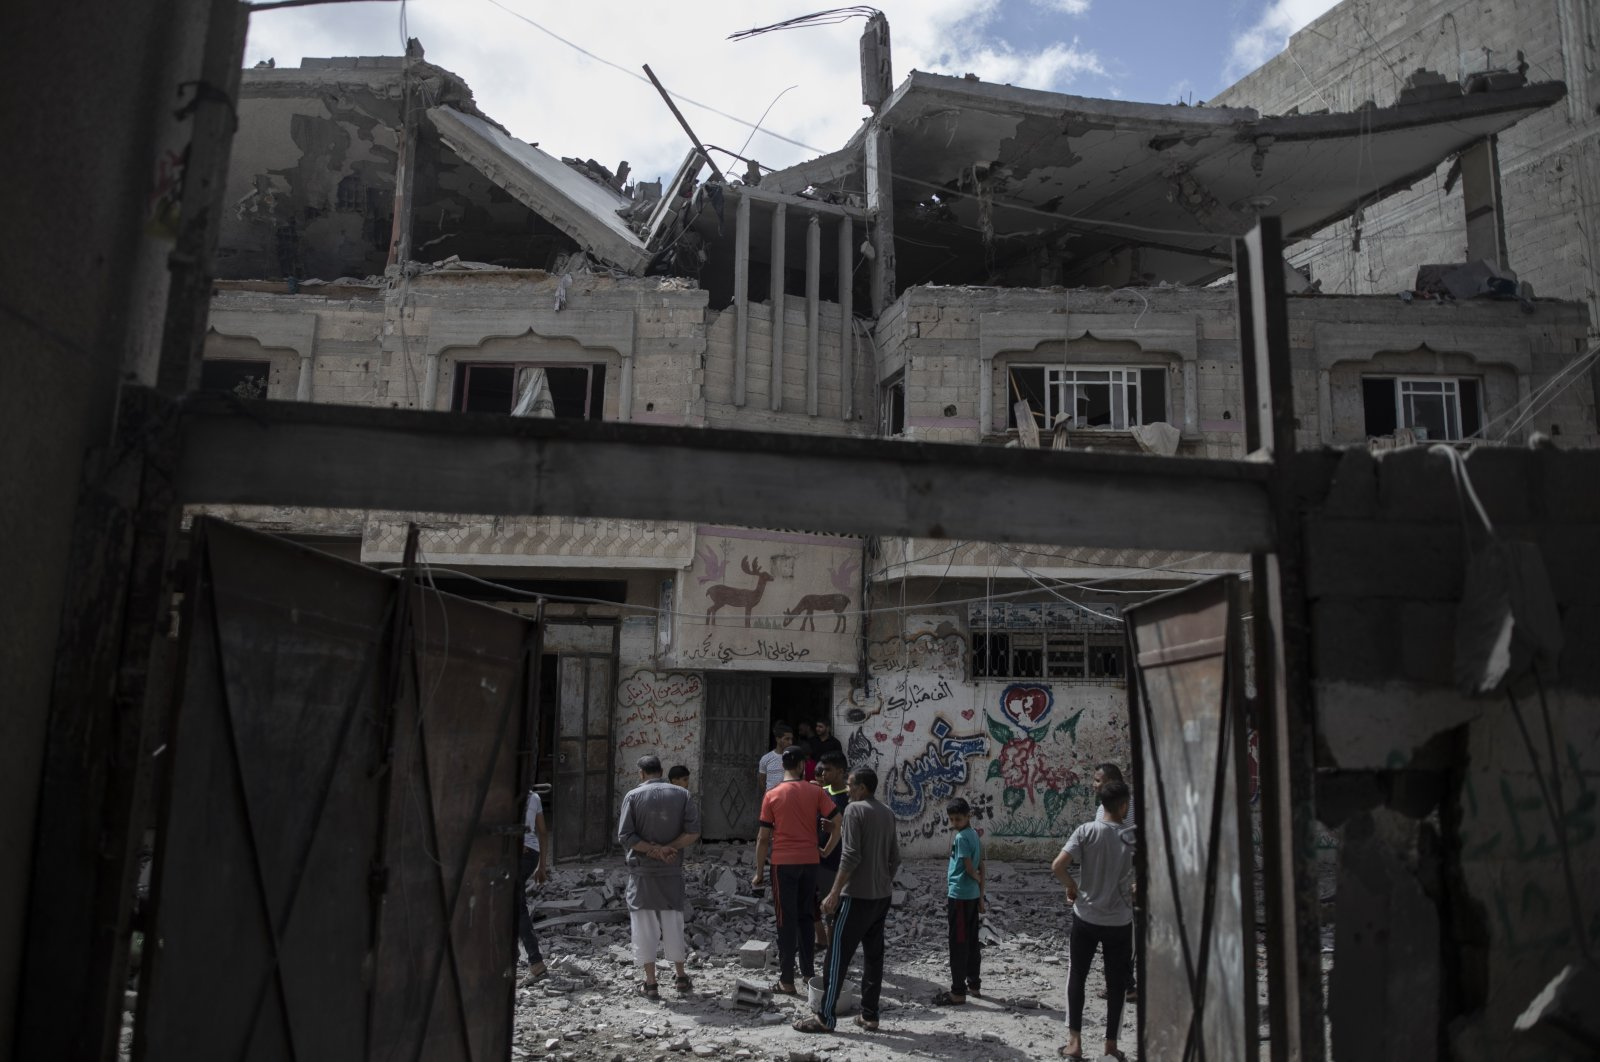 Palestinians inspect a damaged house that was hit by early morning Israeli airstrikes, in Gaza City, Palestine, May 17, 2021. (AP Photo)